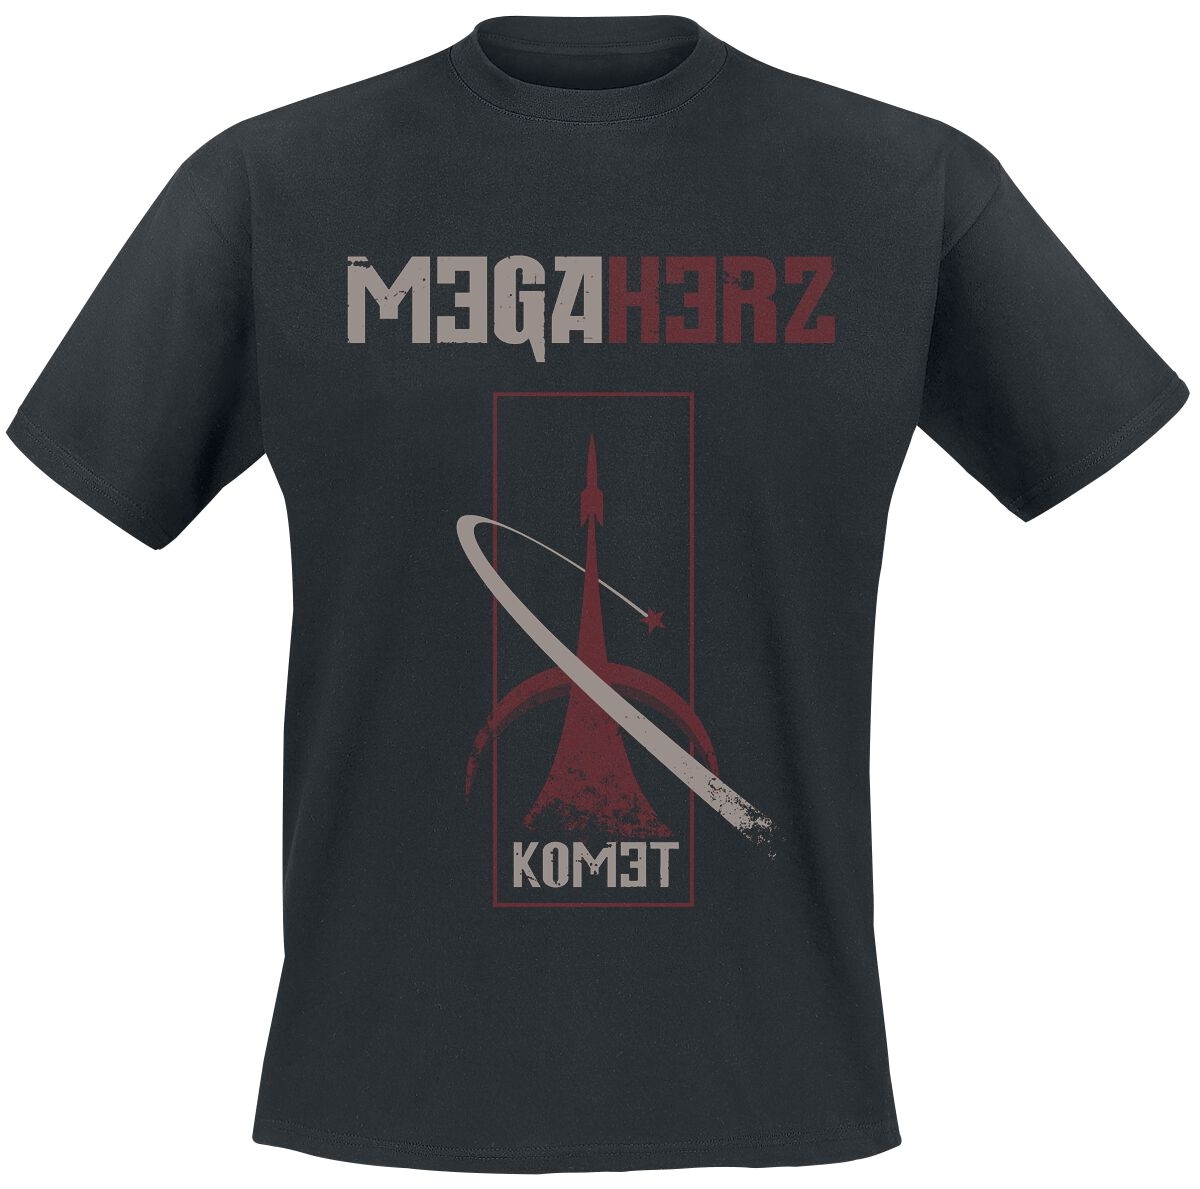 Image of   Megaherz Komet - Rocket T-Shirt sort